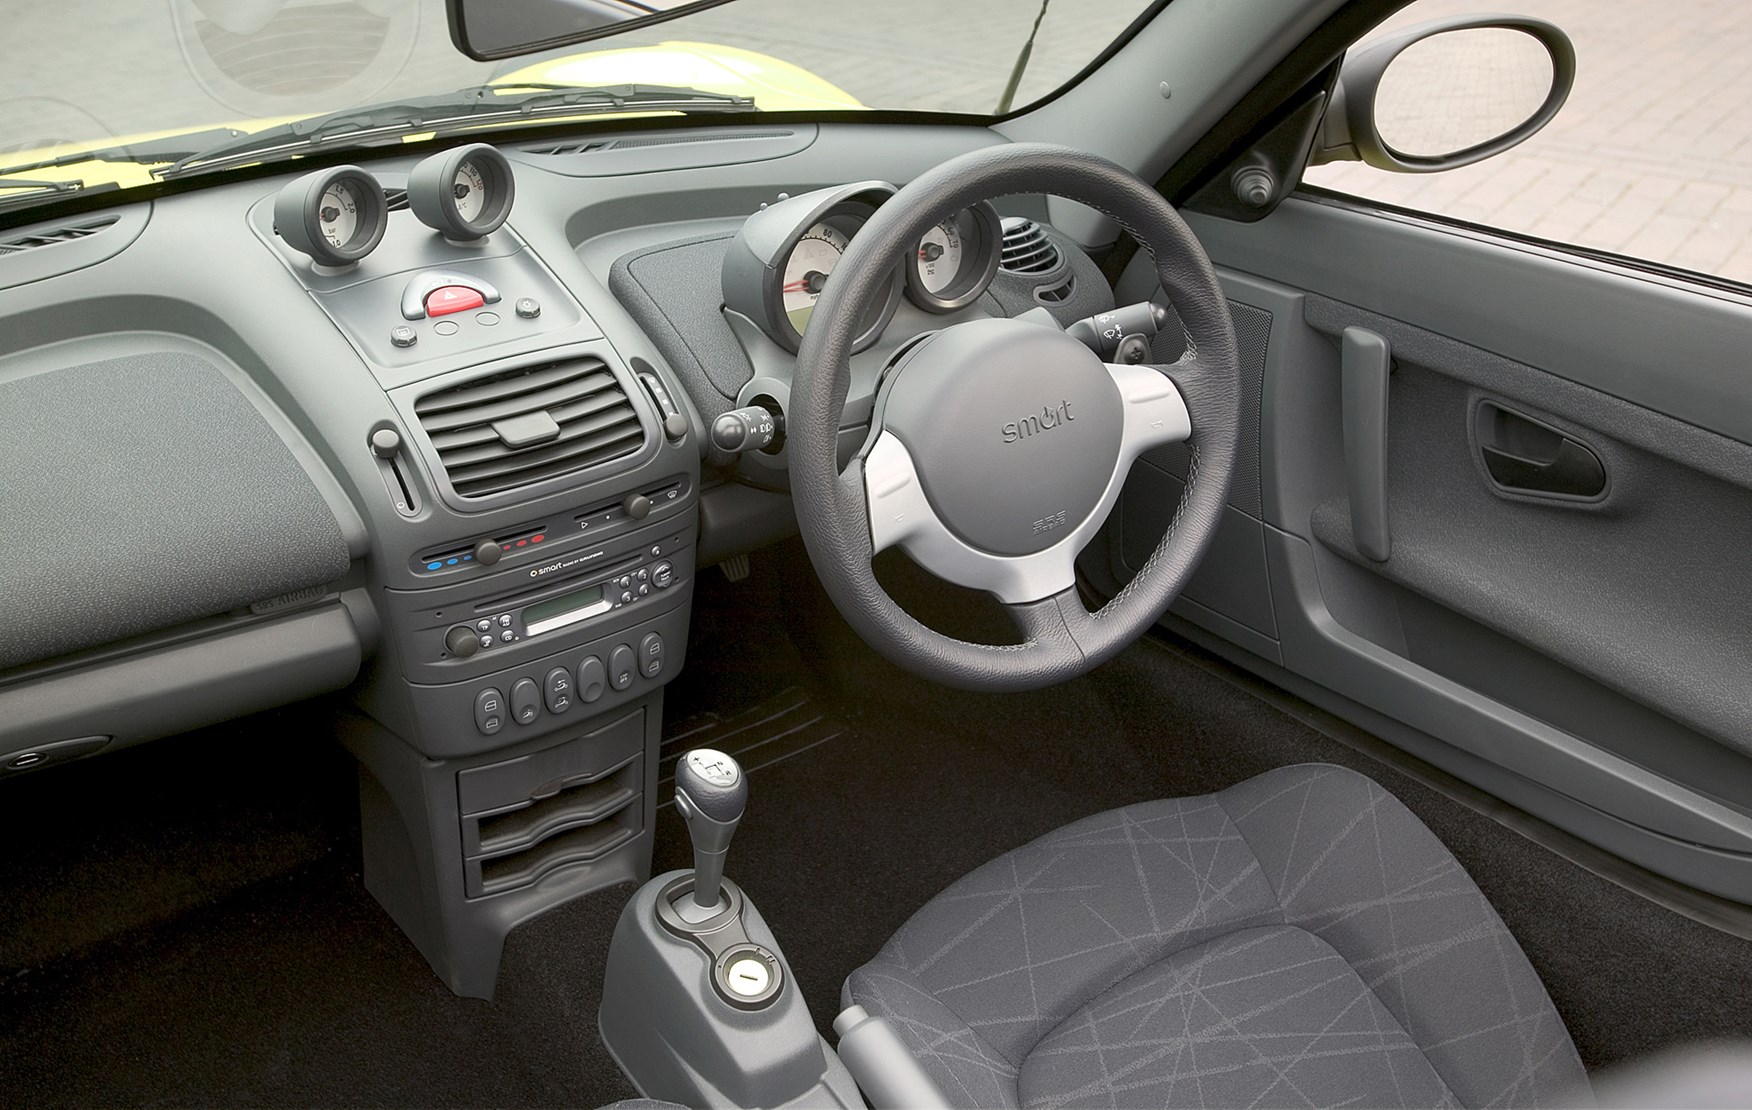 View all images of the smart roadster 03 07